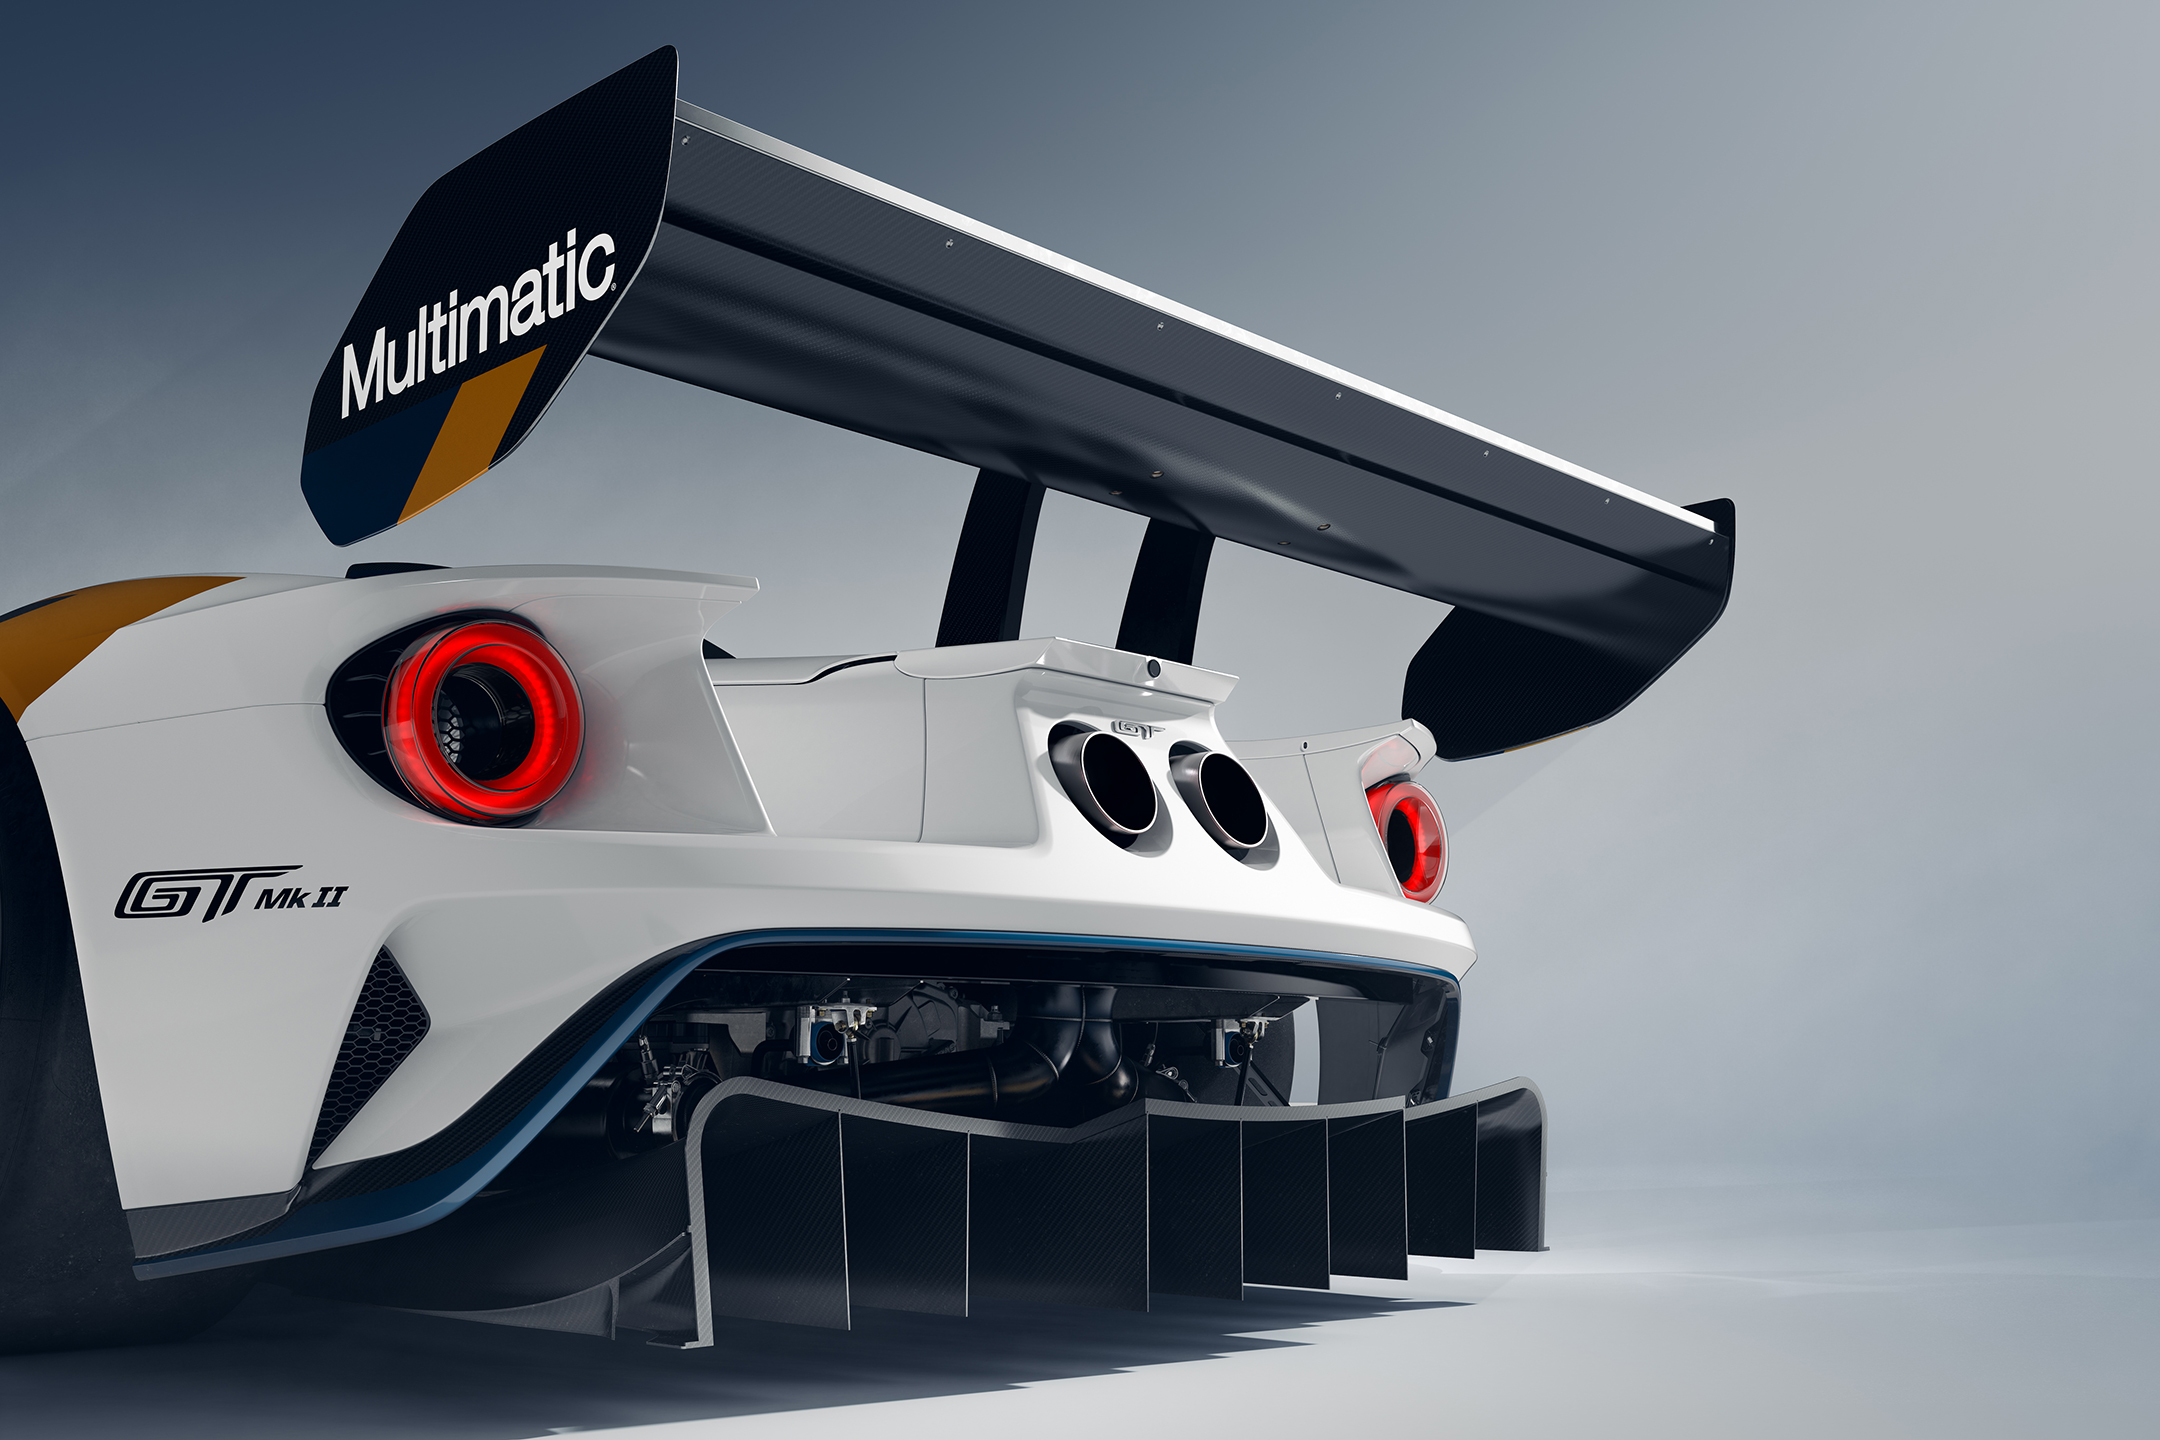 Ford GT Mk II - 2019 - rear wing / aileron